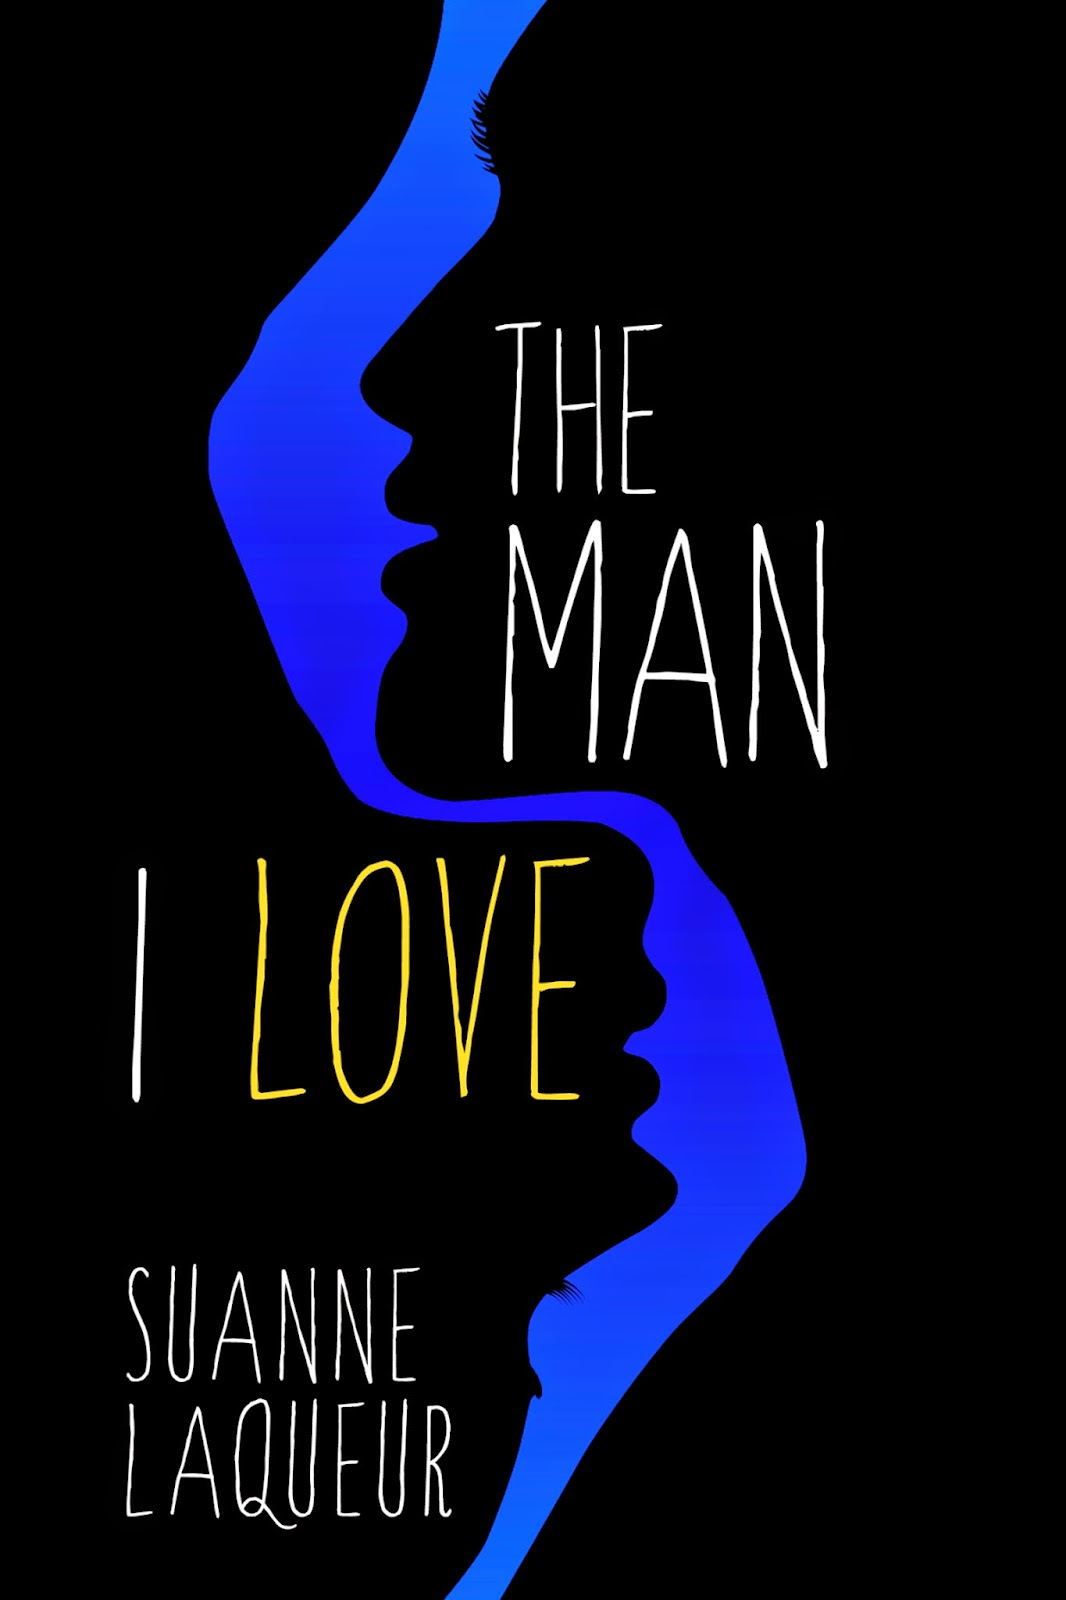 https://www.goodreads.com/book/show/22515690-the-man-i-love?from_search=true